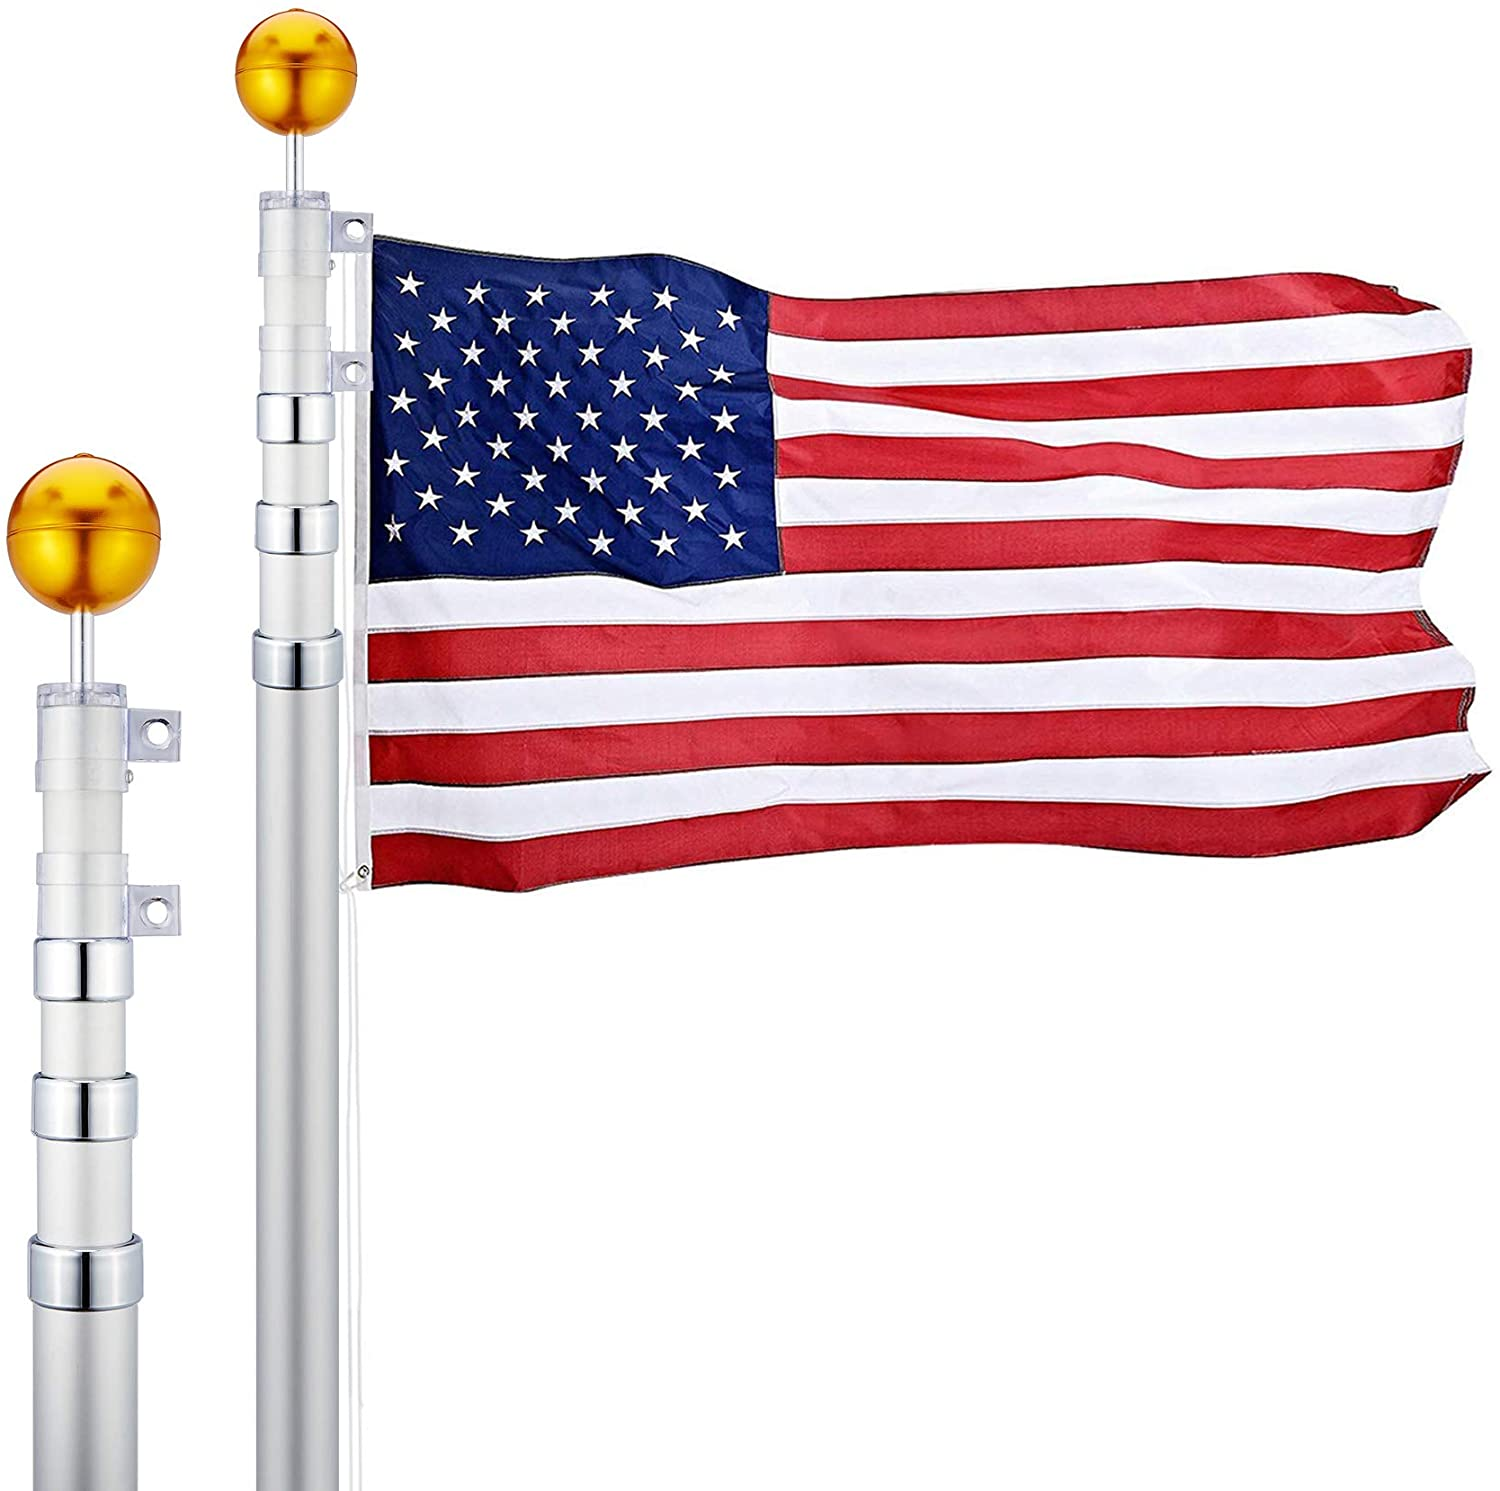 16 Feet Aluminum Telescoping Flag Poles with 3-Feet-by-5-Feet American Flag